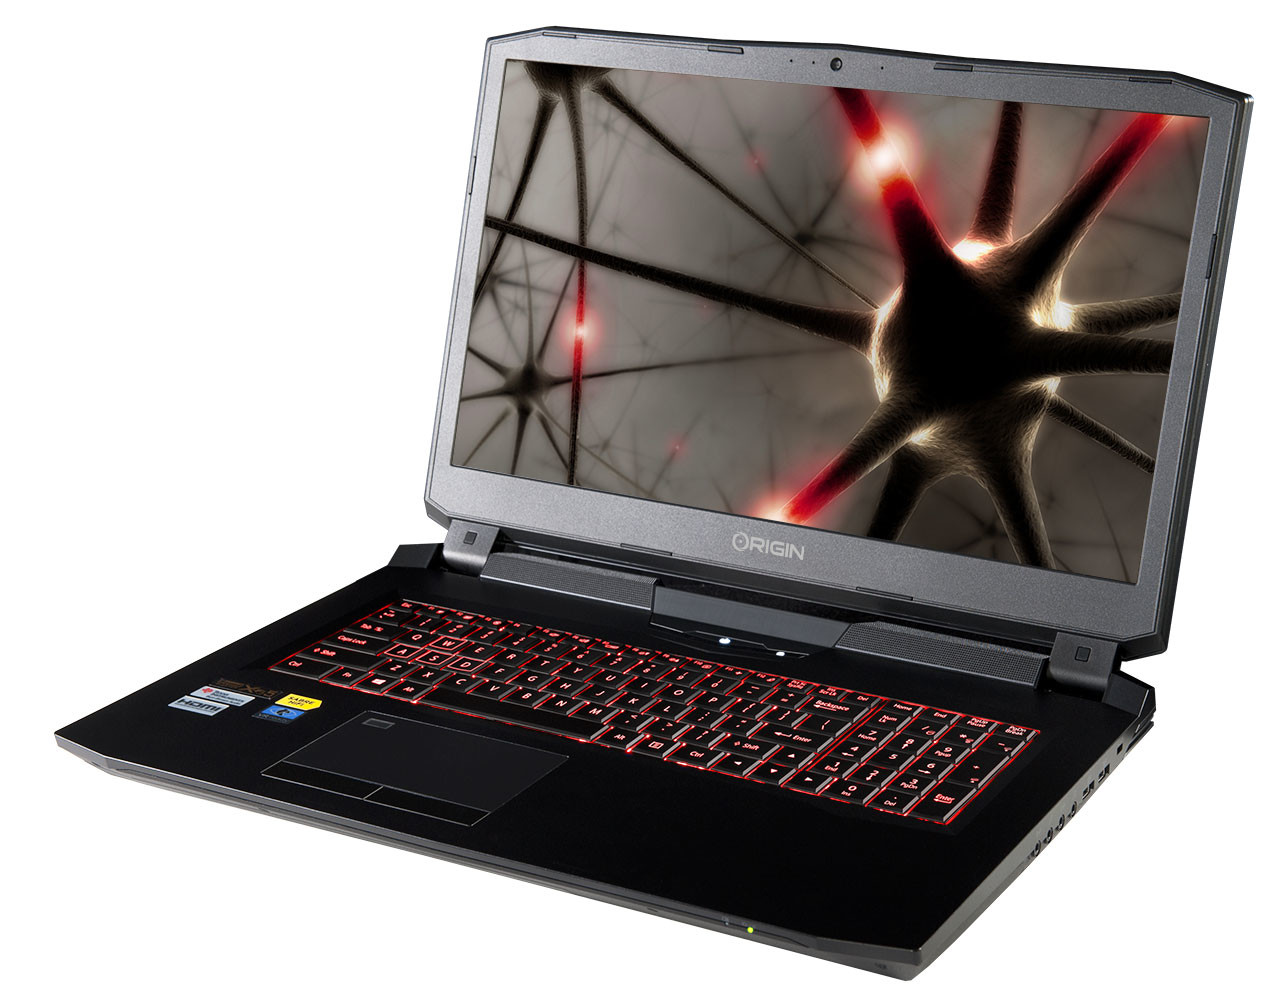 origin-pc-eon-notebooks-2